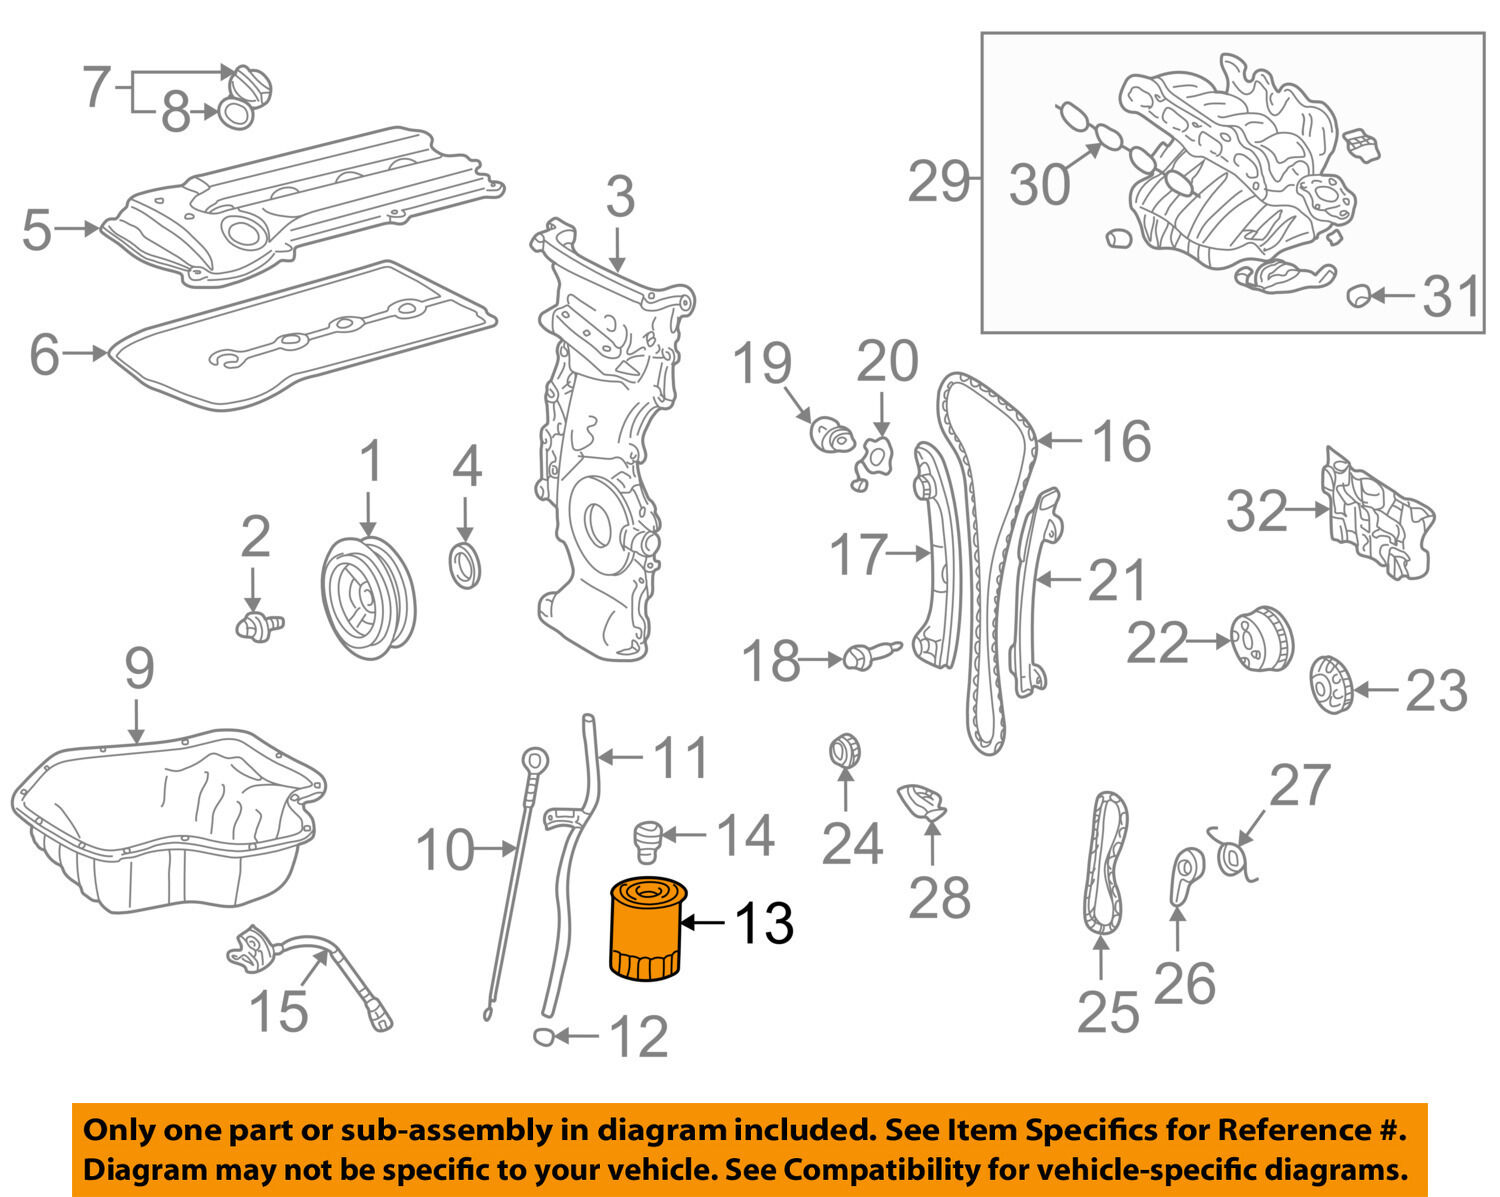 Toyota Oem Engine Oil Filter 90915yzzf1 899 Picclick Camry Diagram 1 Of 2free Shipping